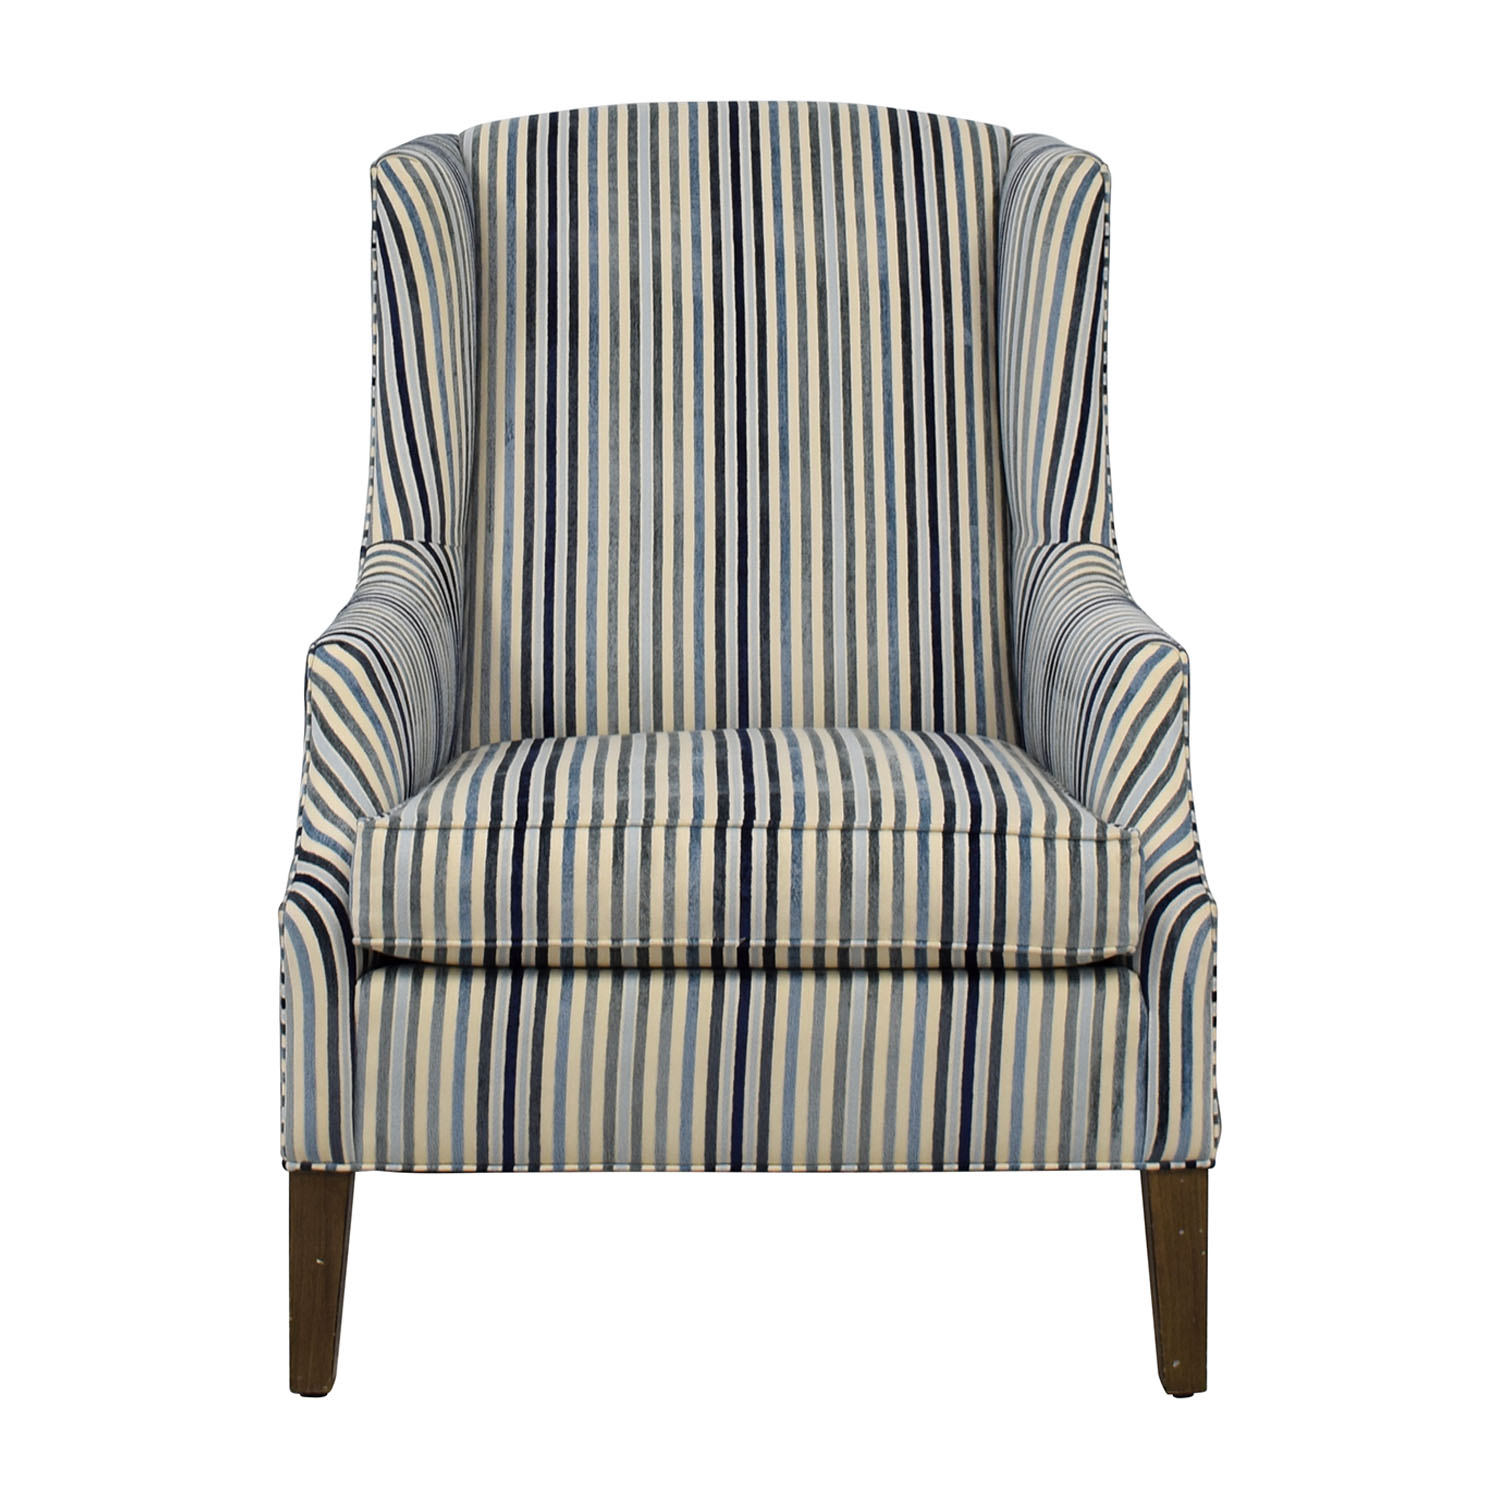 Ethan Allen Ethan Allen Custom Upholstered Striped Accent Chair Chairs